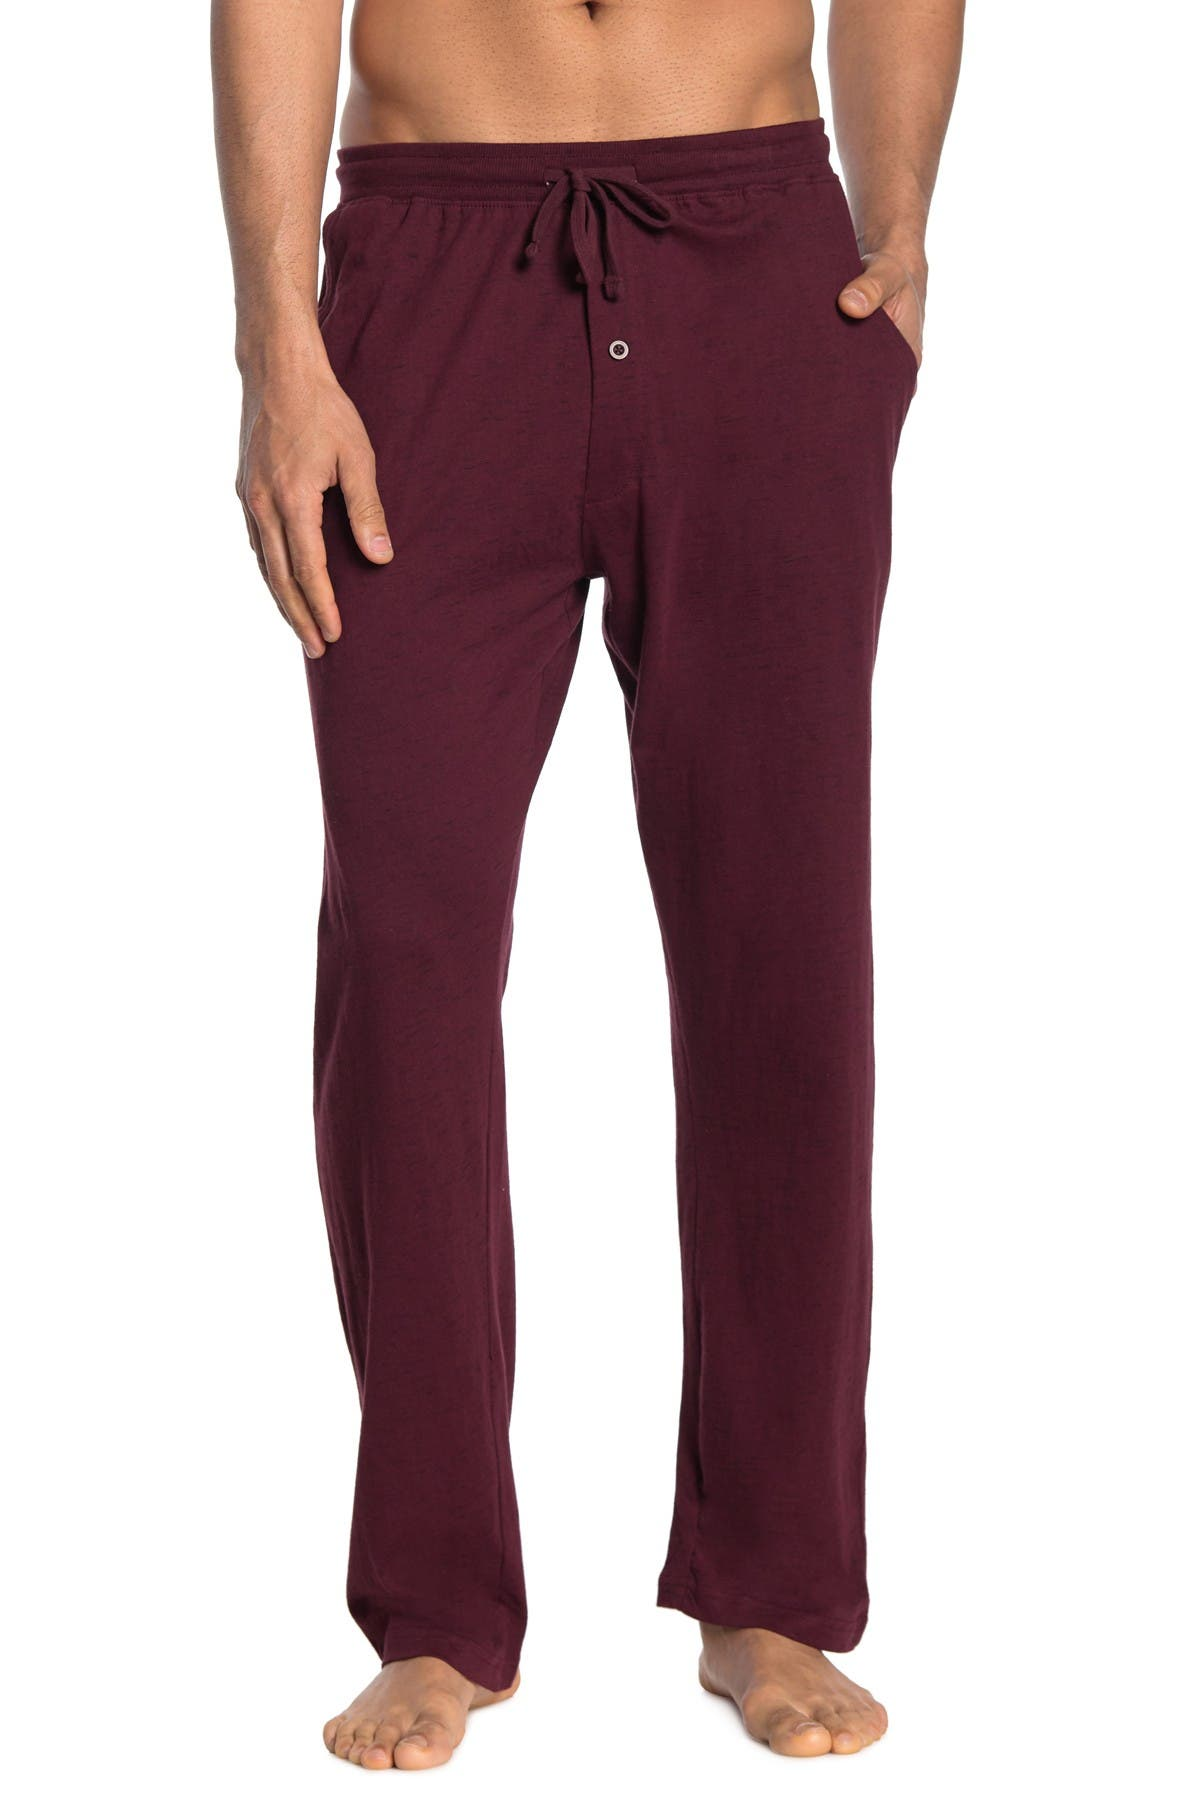 Image of Unsimply Stitched Lightweight Relax Lounge Pants